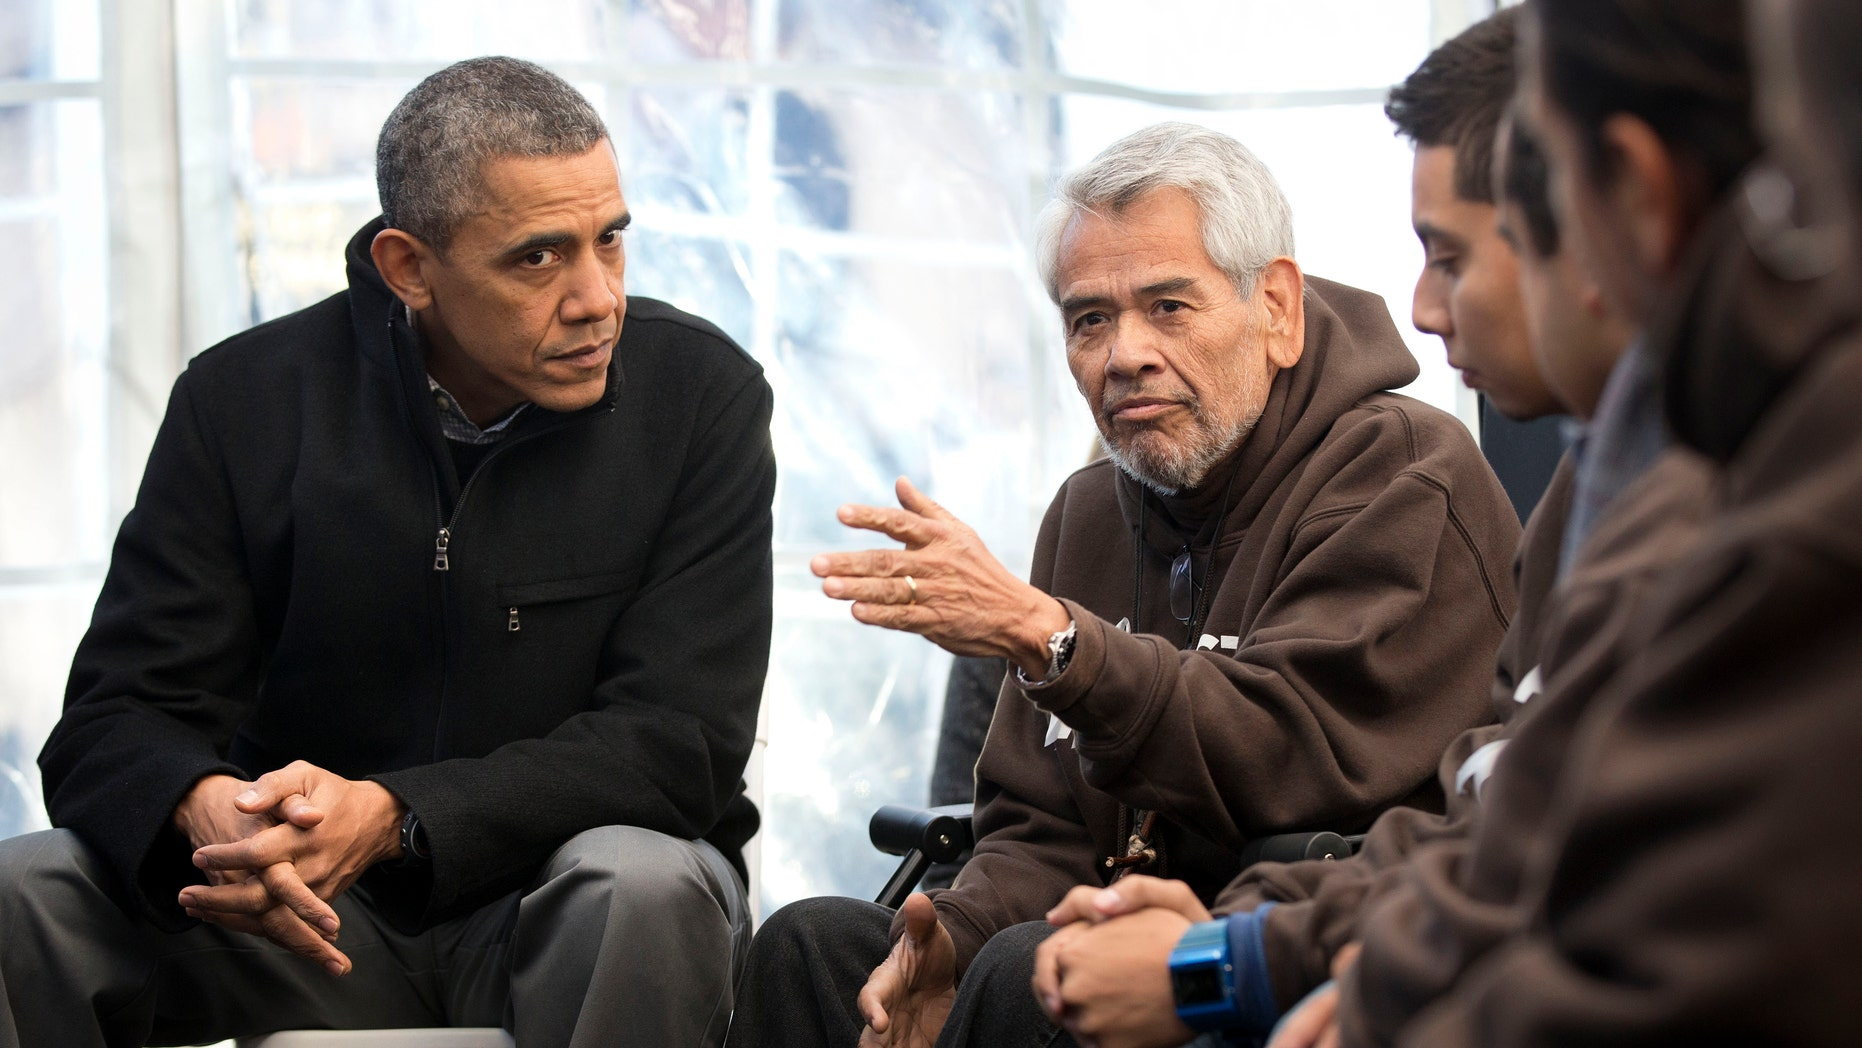 President Barack Obama, left, listens to Eliseo Medina, right, Secretary-Treasurer of Service Employees International Union (SEIU), as he meets with individuals who are taking part in Fast for Families on the National Mall in Washington, Friday, Nov. 29, 2013. Obama met with the group who are fasting on behalf of immigration reform. (AP Photo/Pablo Martinez Monsivais)